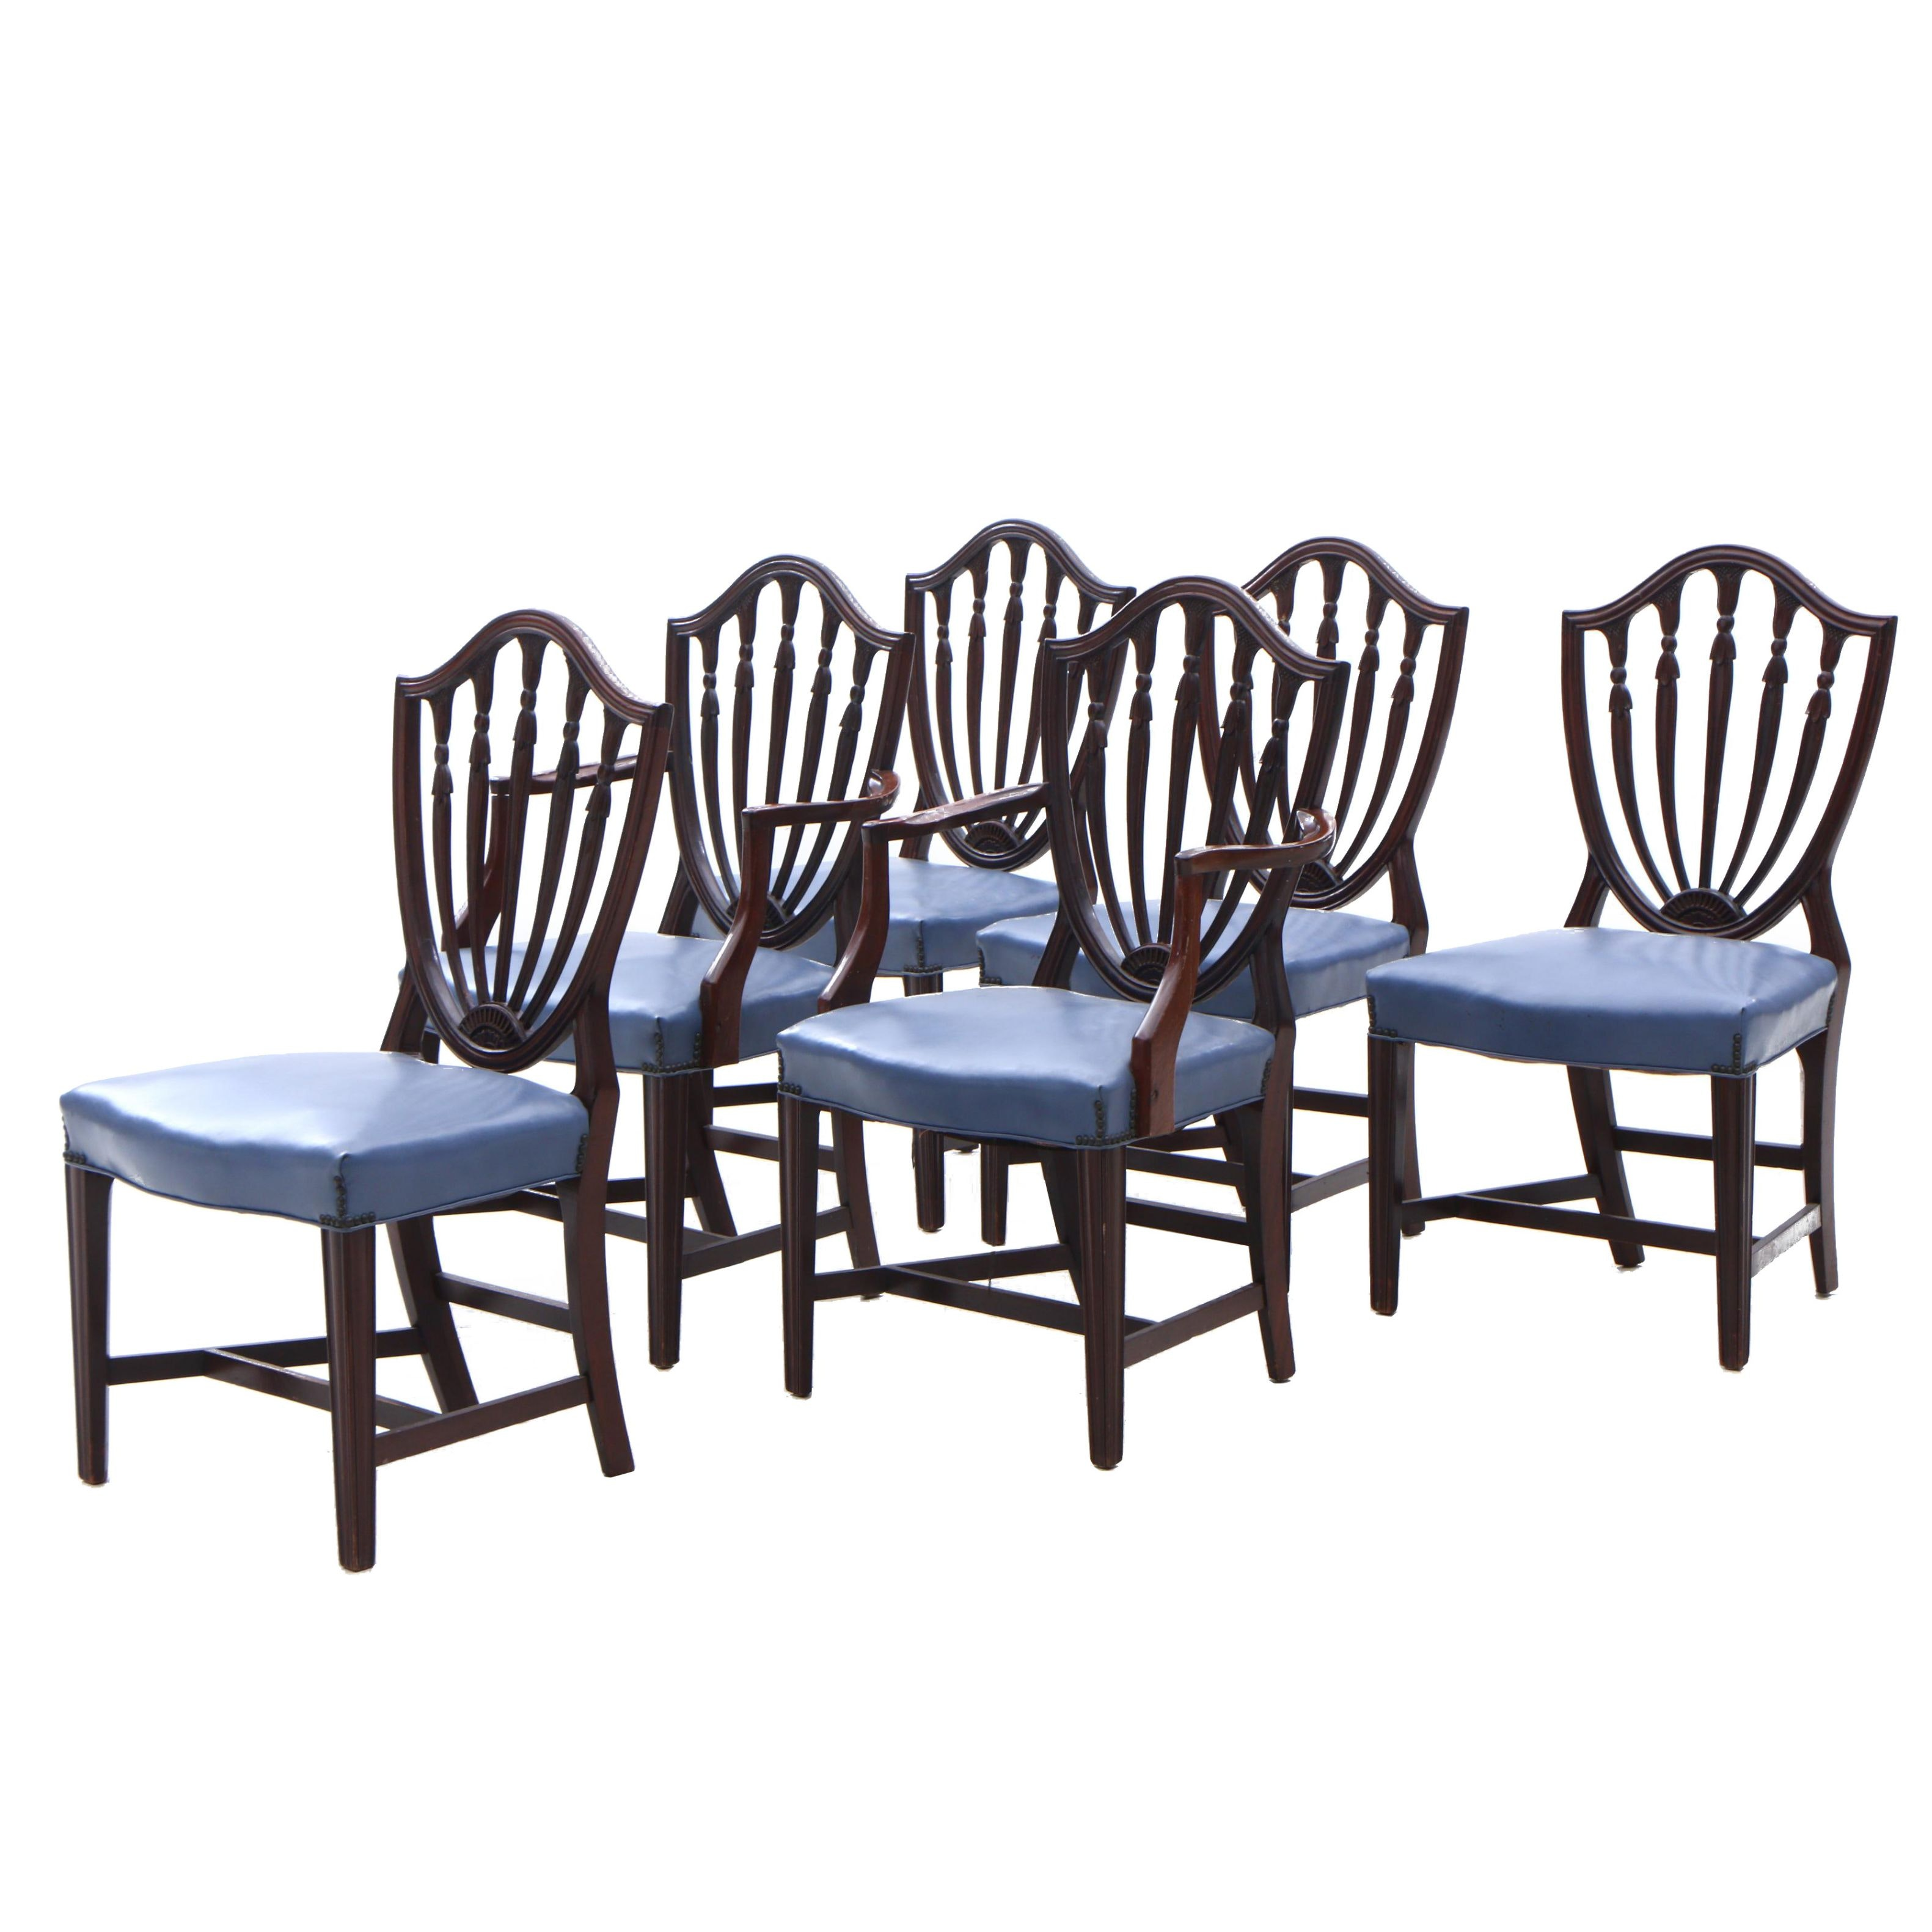 Hepplewhite Style Upholstered Arm and Side Chairs with Nailhead Detailing